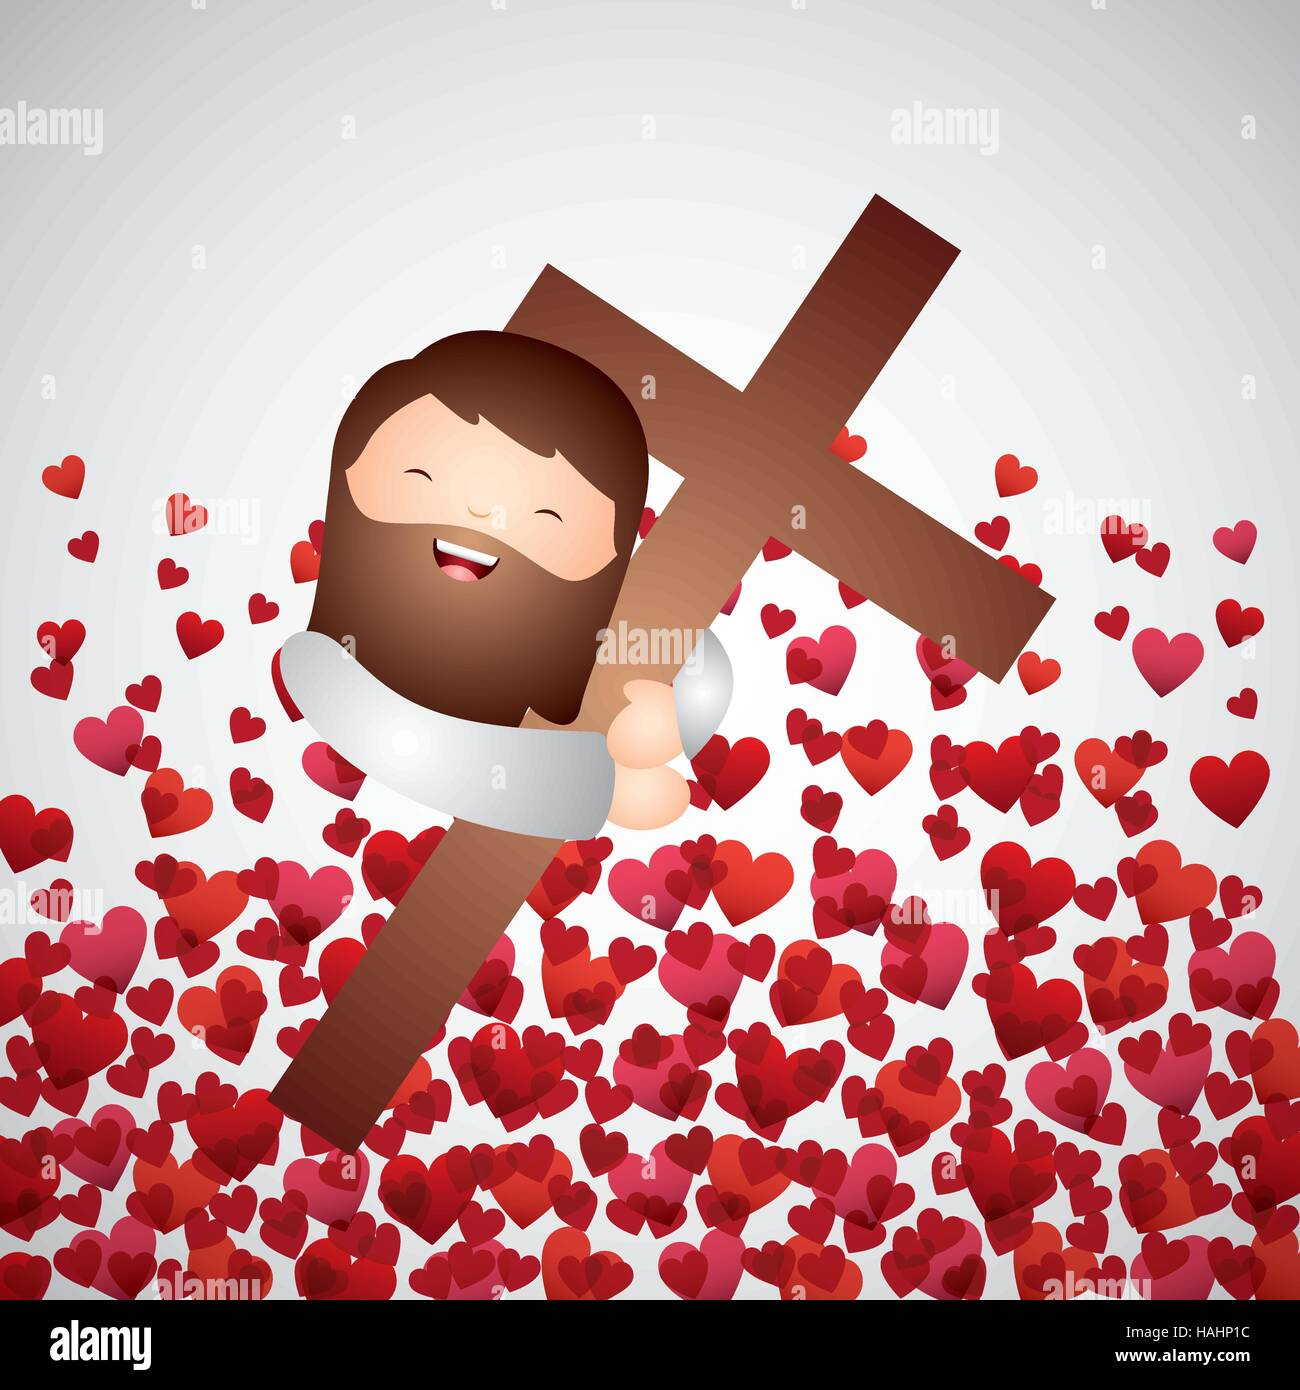 cartoon jesus man hugging a wooden cross over red hearts background Stock  Vector Image & Art - Alamy